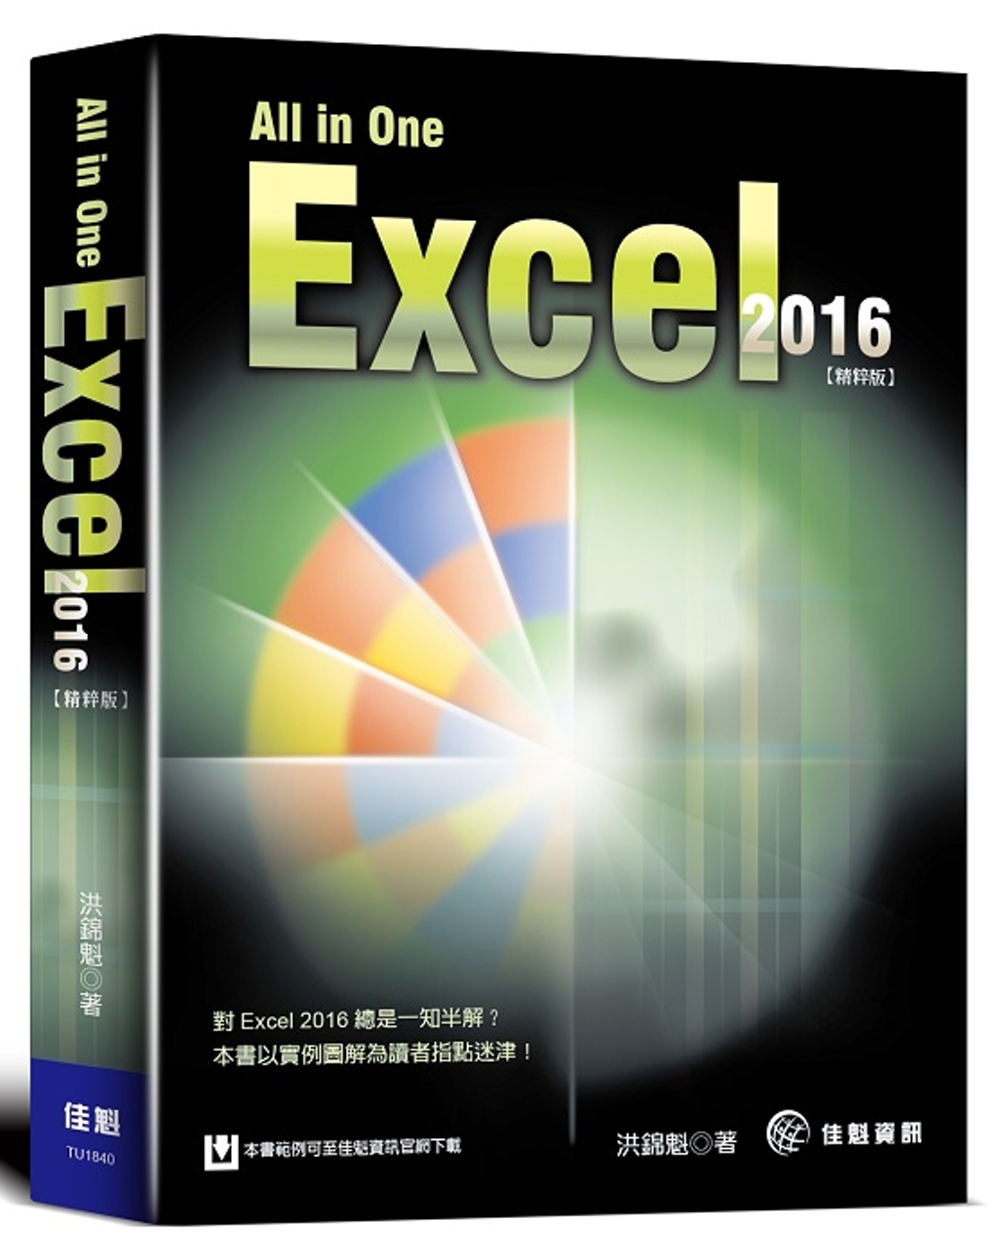 All in One:Excel 2016 精粹版